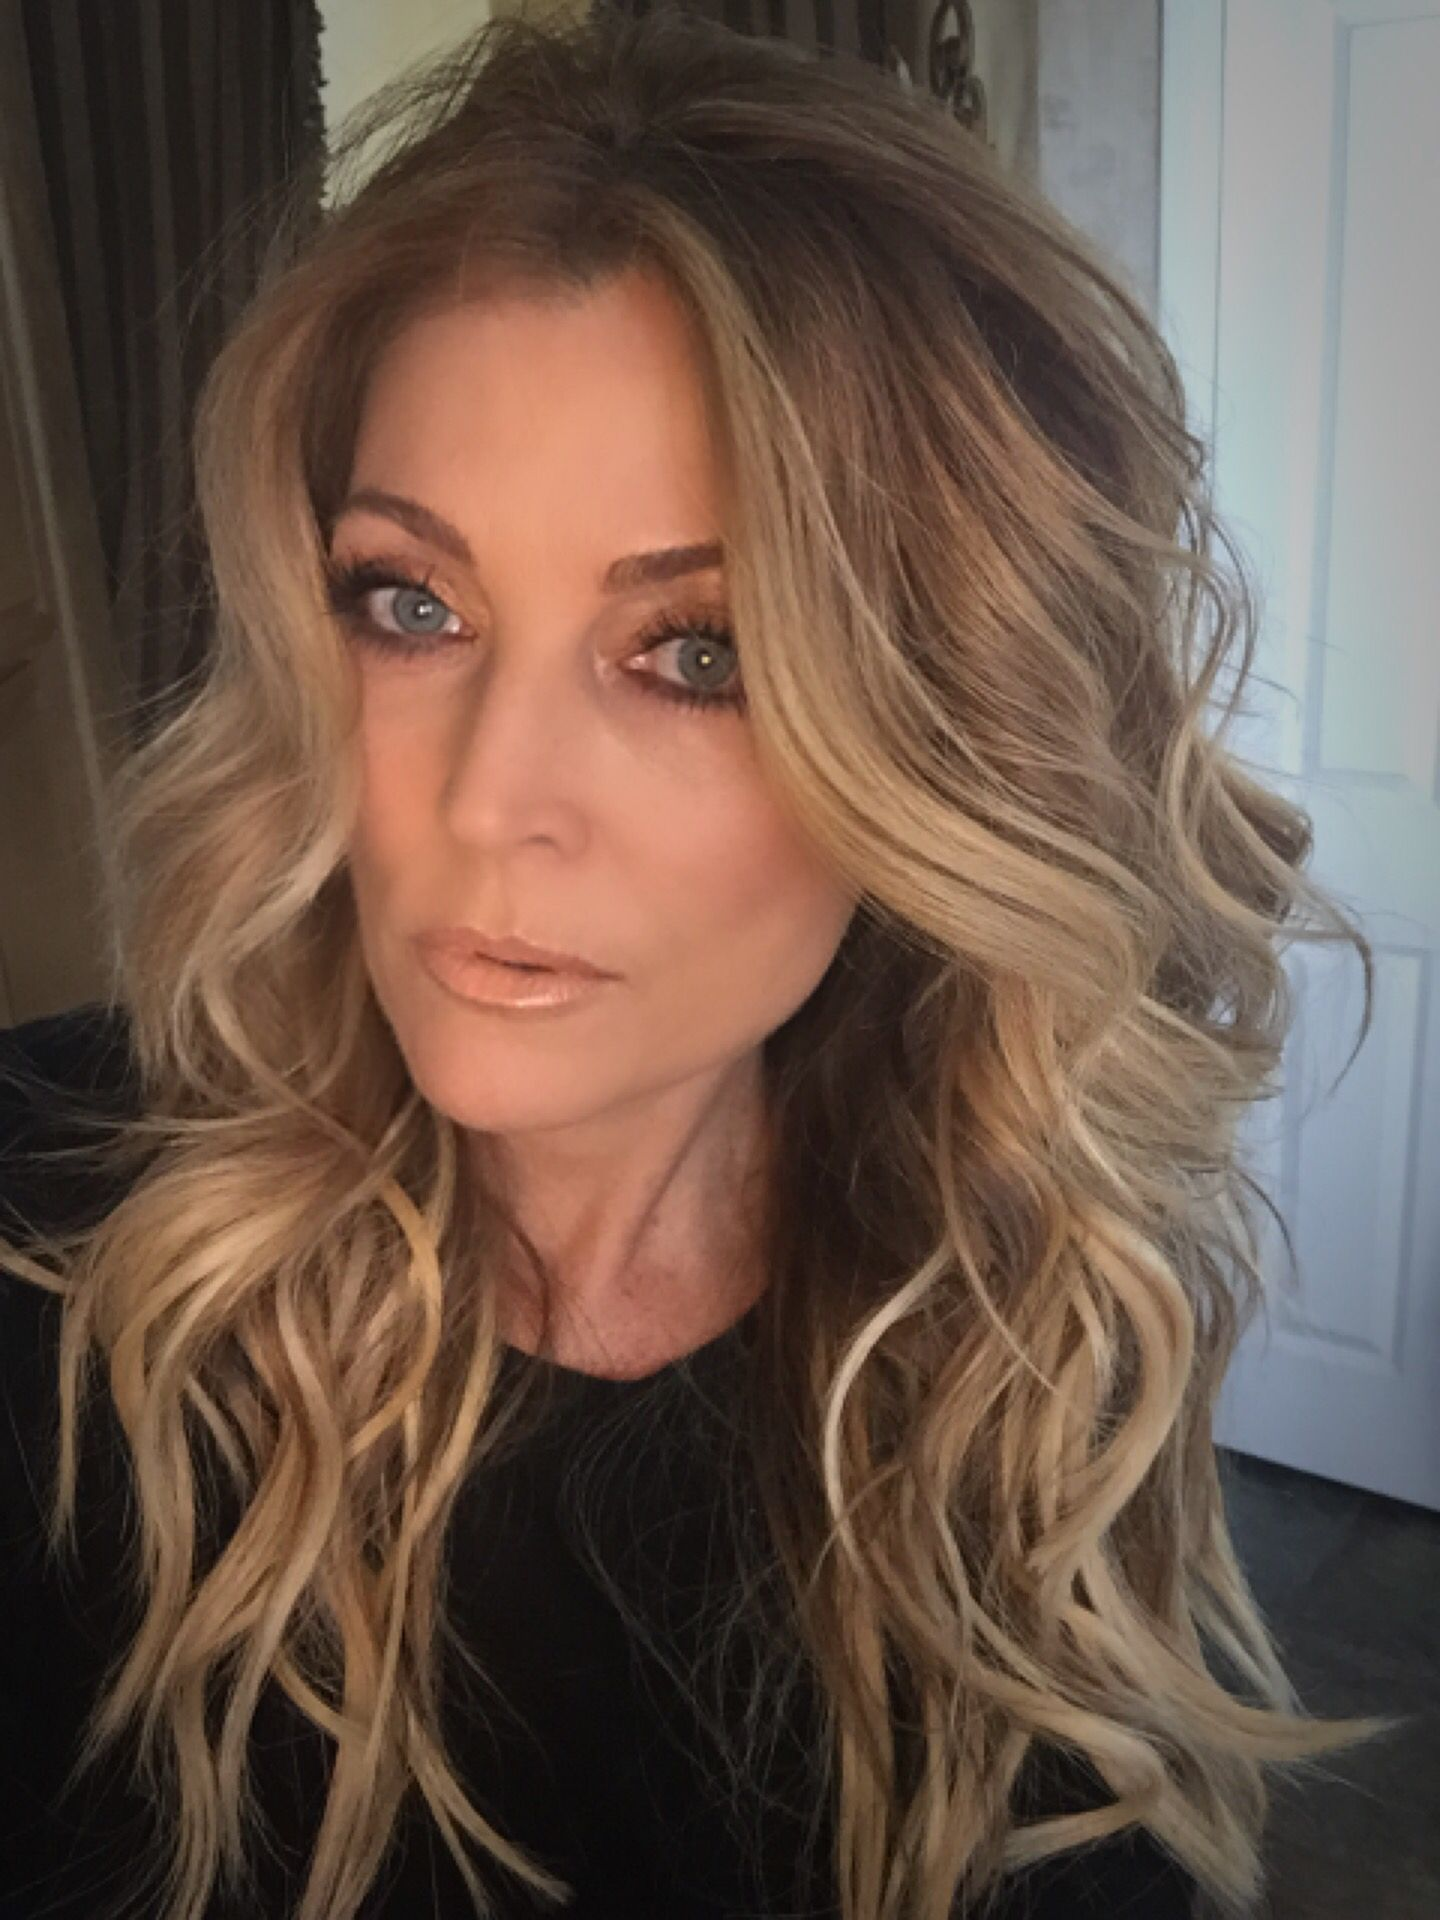 Boho beach waves made with flat iron by ergo products and